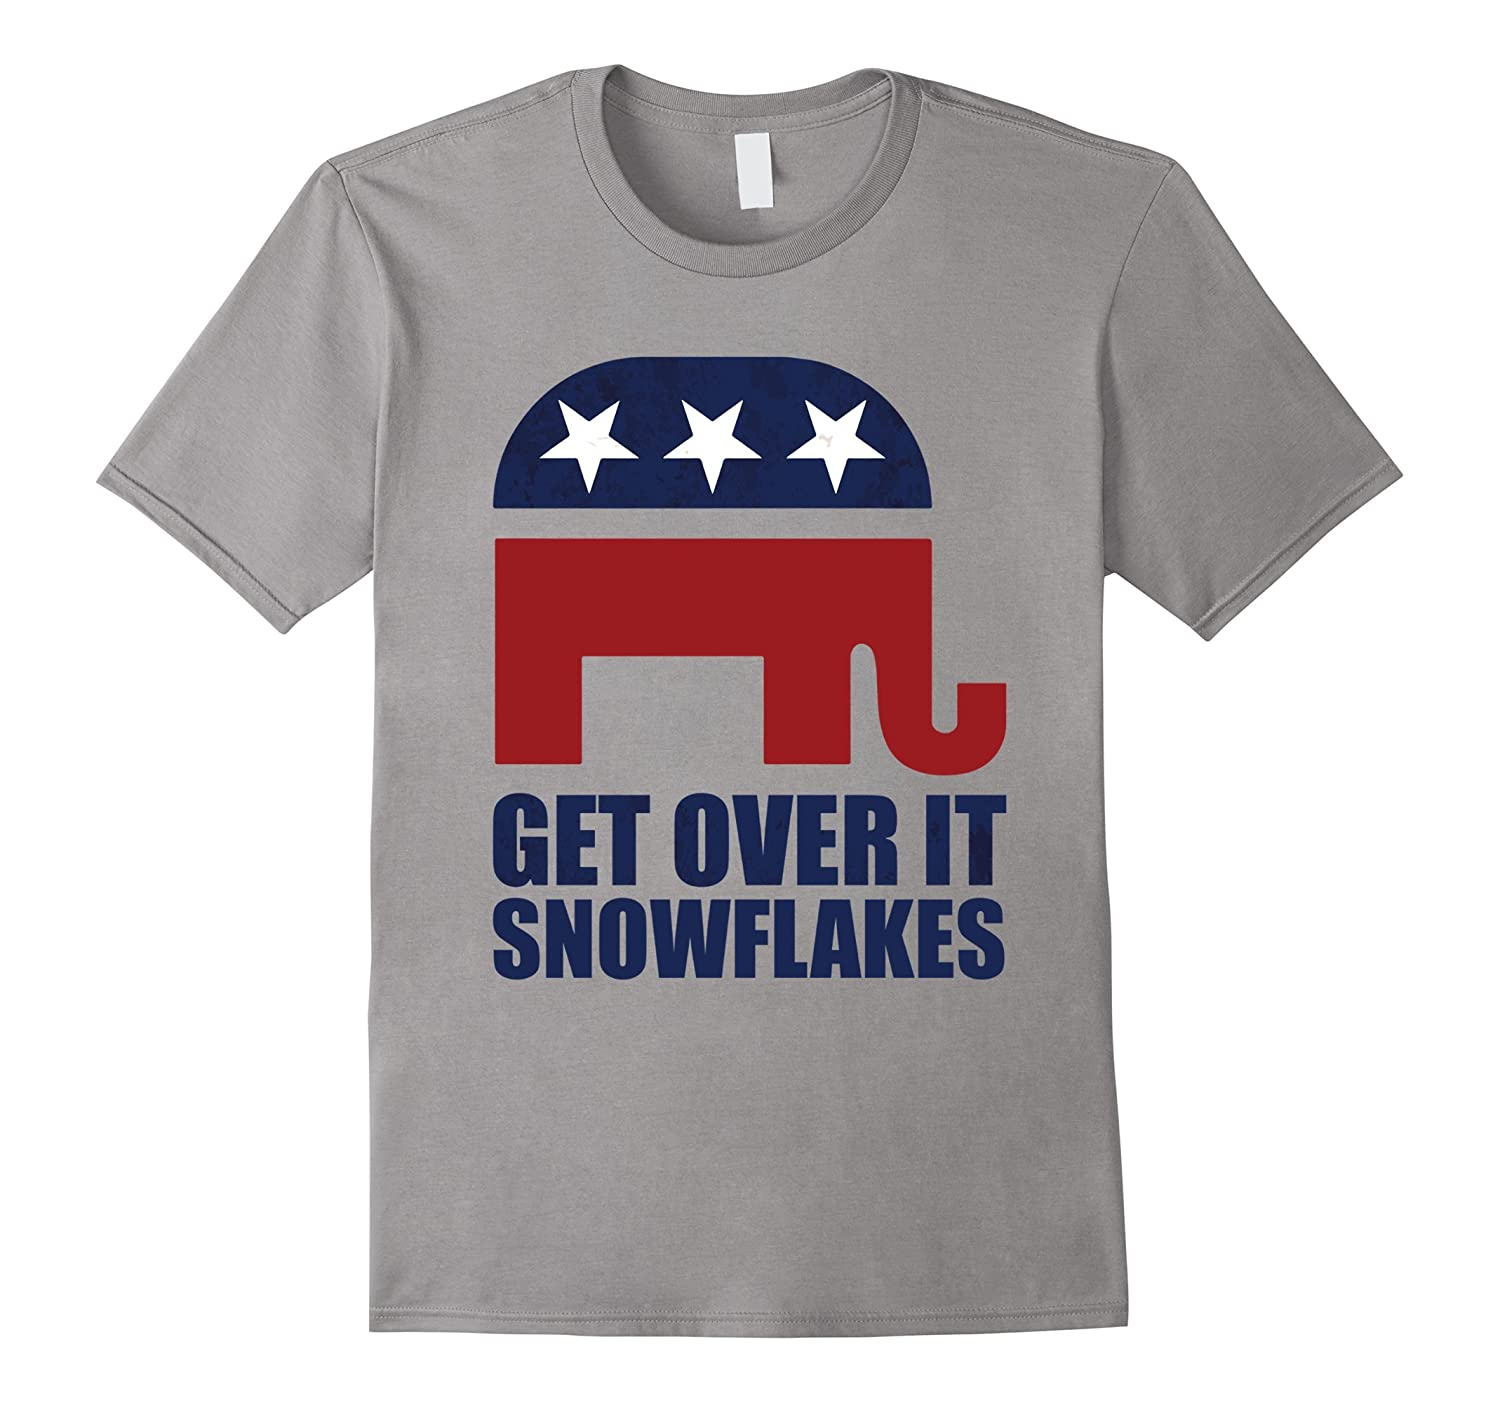 Get Over It Snowflakes 2016 Republican Trump Victory T-Shirt